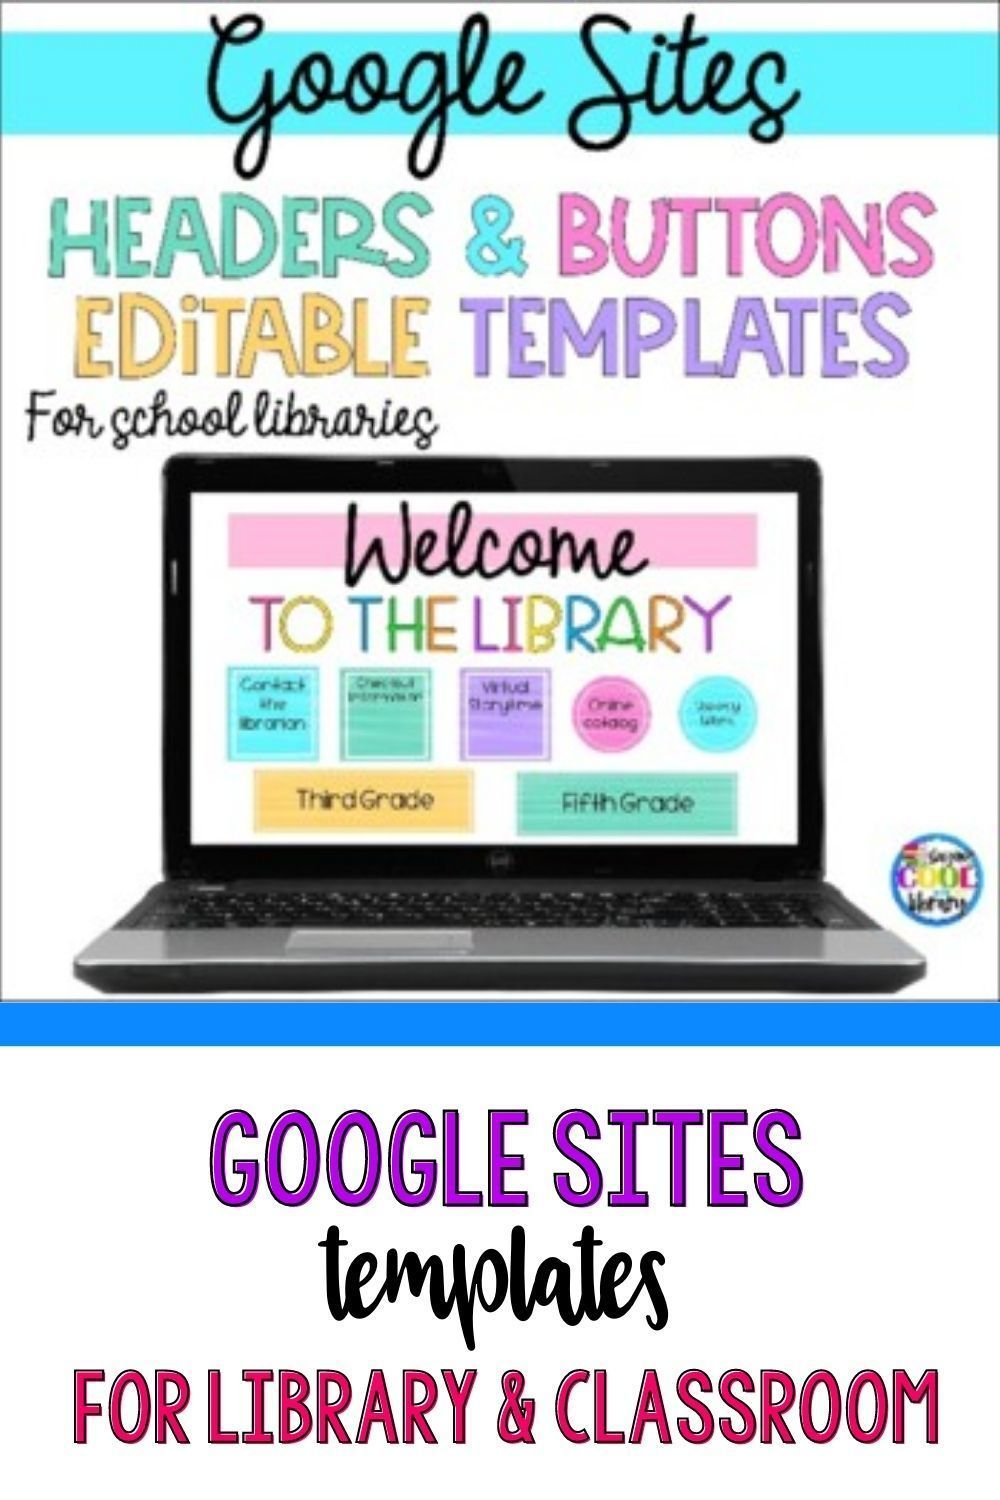 Google Sites Templates Classroom Or Library Templates Library Lesson Plans Library Skills School Library